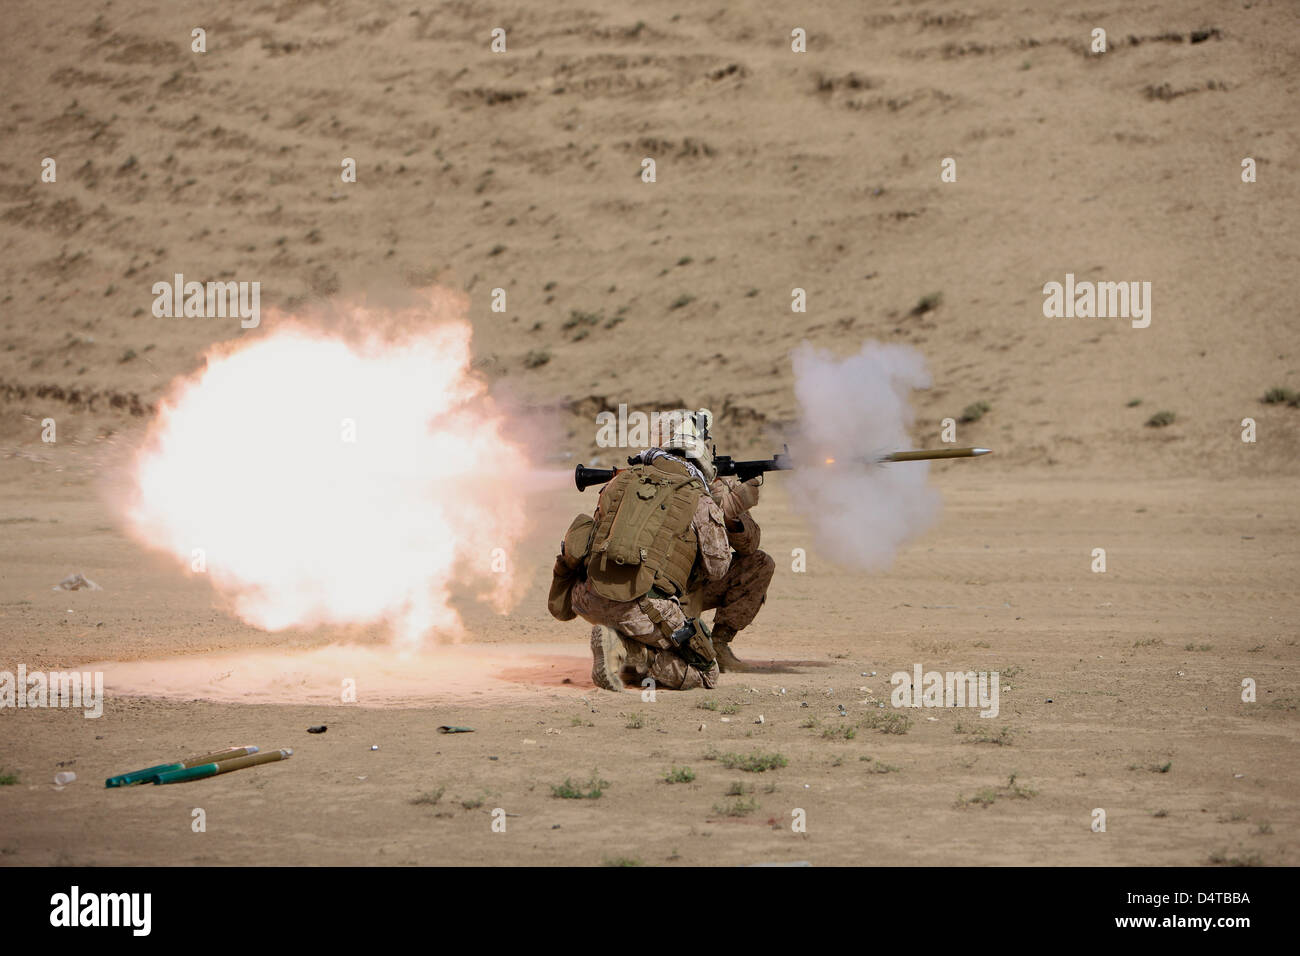 U.S. Marine fires a HE fragmentation round from the RPG-7 rocket-propelled grenade launcher in a wadi near Kunduz, - Stock Image